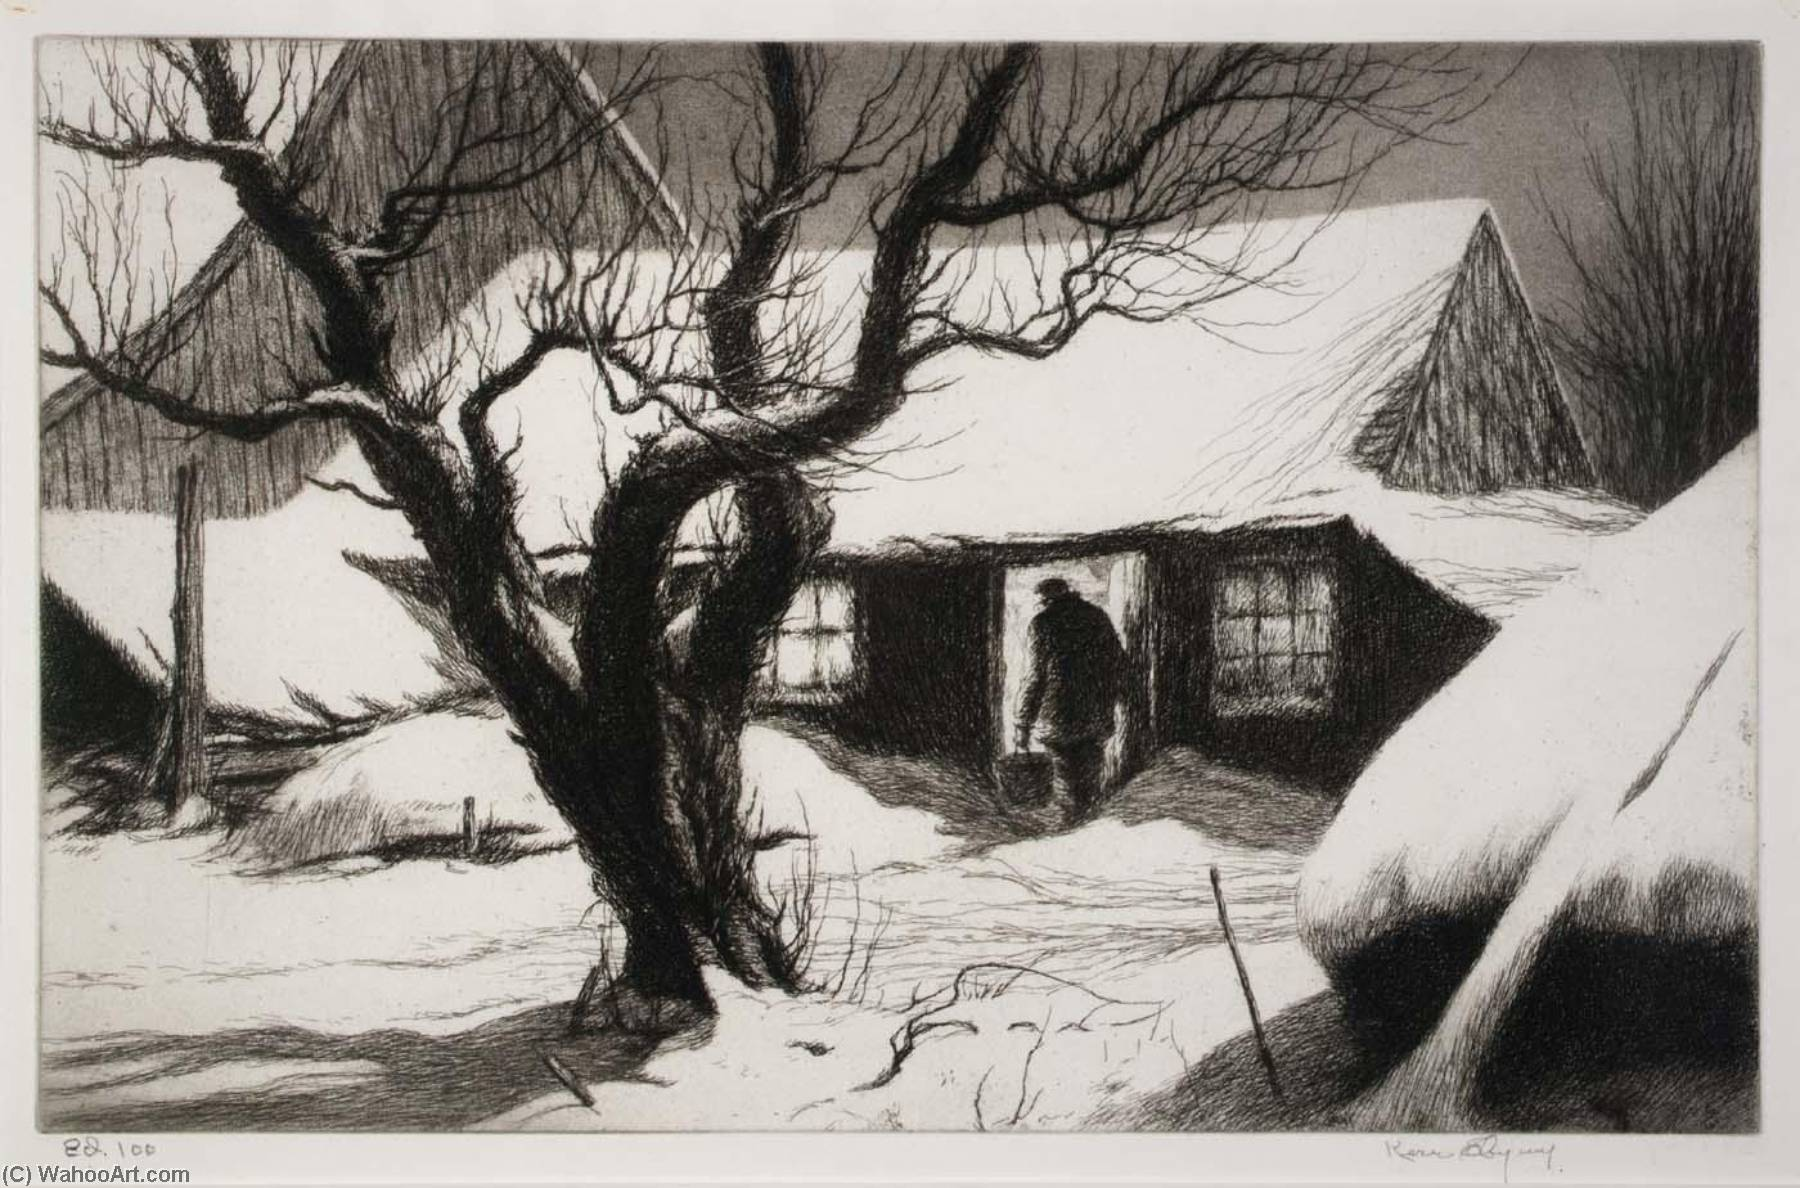 Cow Shed, Friendship, Maine, 1941 by Kerr Eby | Reproductions Kerr Eby | WahooArt.com